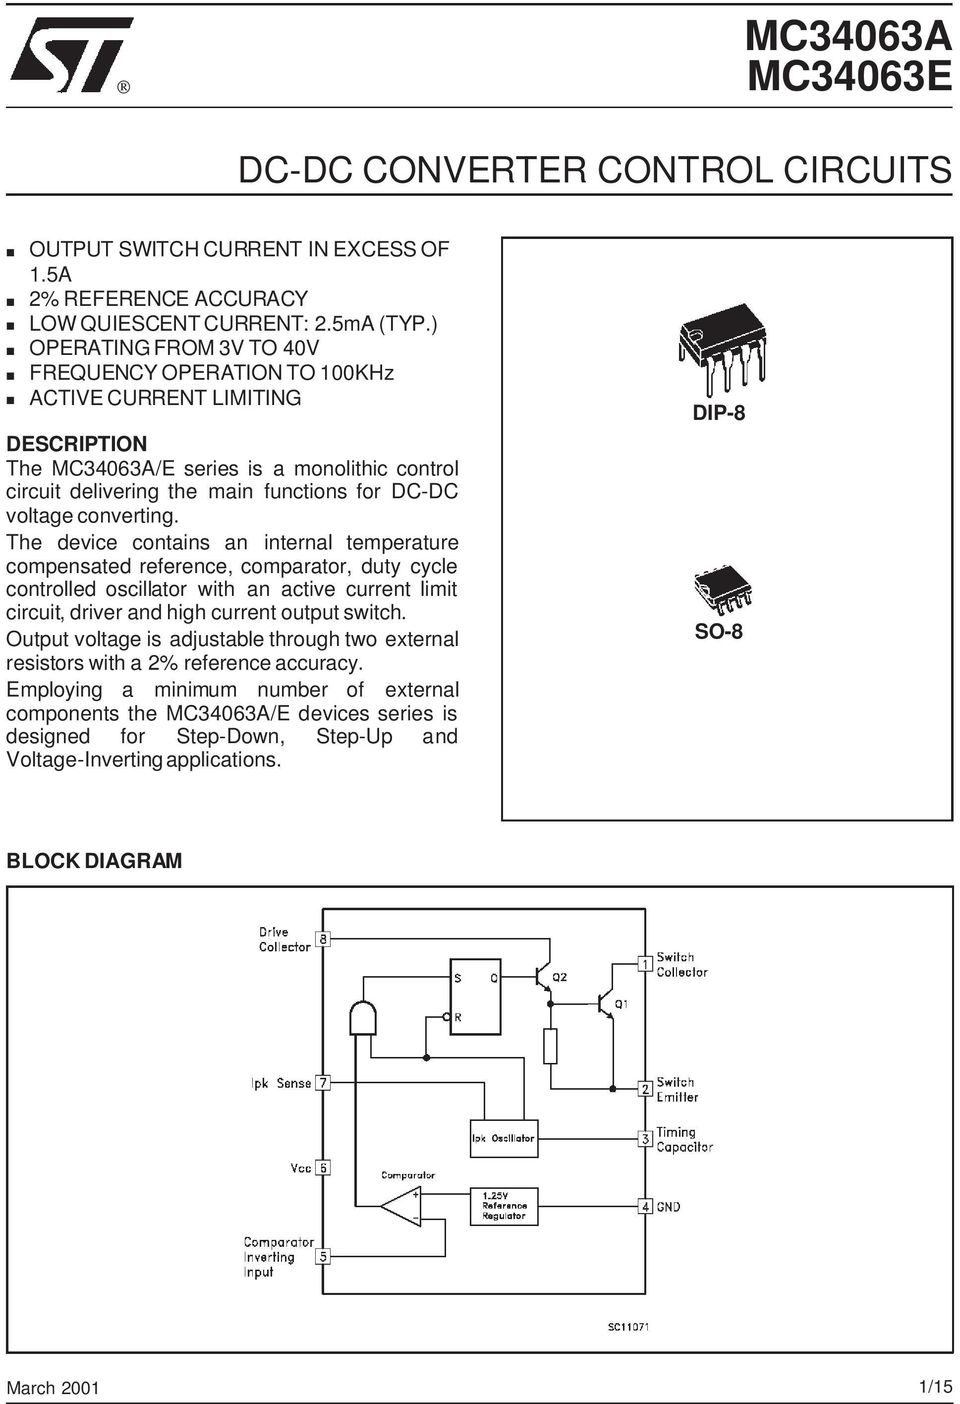 Mc34063a Mc34063e Dc Converter Control Circuits Pdf Current Limit Circuit Converting The Device Contains An Internal Temperature Compensated Reference Comparator Duty Cycle Controlled